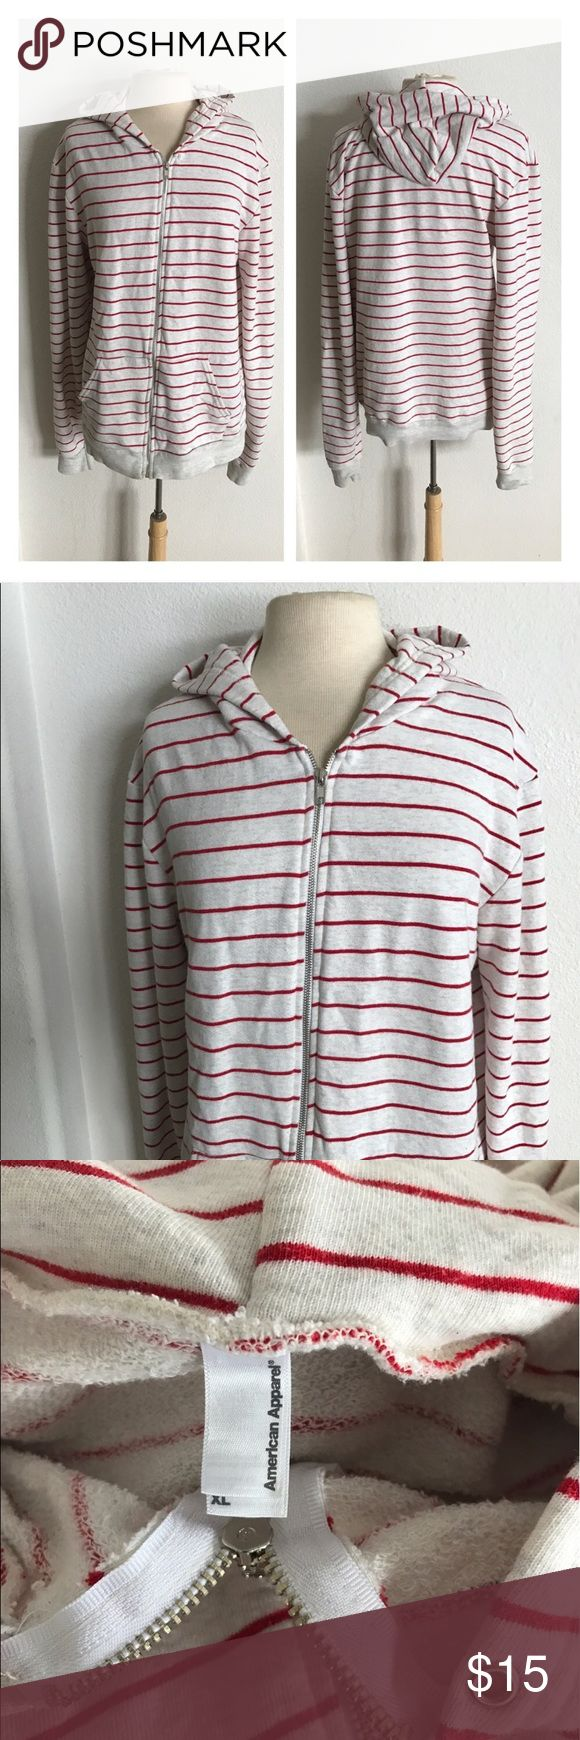 """American Apparel Men's striped zip up hoodie American Apparel red/ beige striped zip up hoodie. Men's hoodie size XL. Owned and worn by me and fit perfectly when I was a 14/16. Measures 29"""" long with a 42"""" bust. 70% cotton/ 30% polyester. This has some weight to it! Two functional front pockets. Missing drawstring. This does have some pilling throughout which has been reflected in the price.  💲Reasonable offers accepted ✅Bundle offers American Apparel Jackets & Coats"""